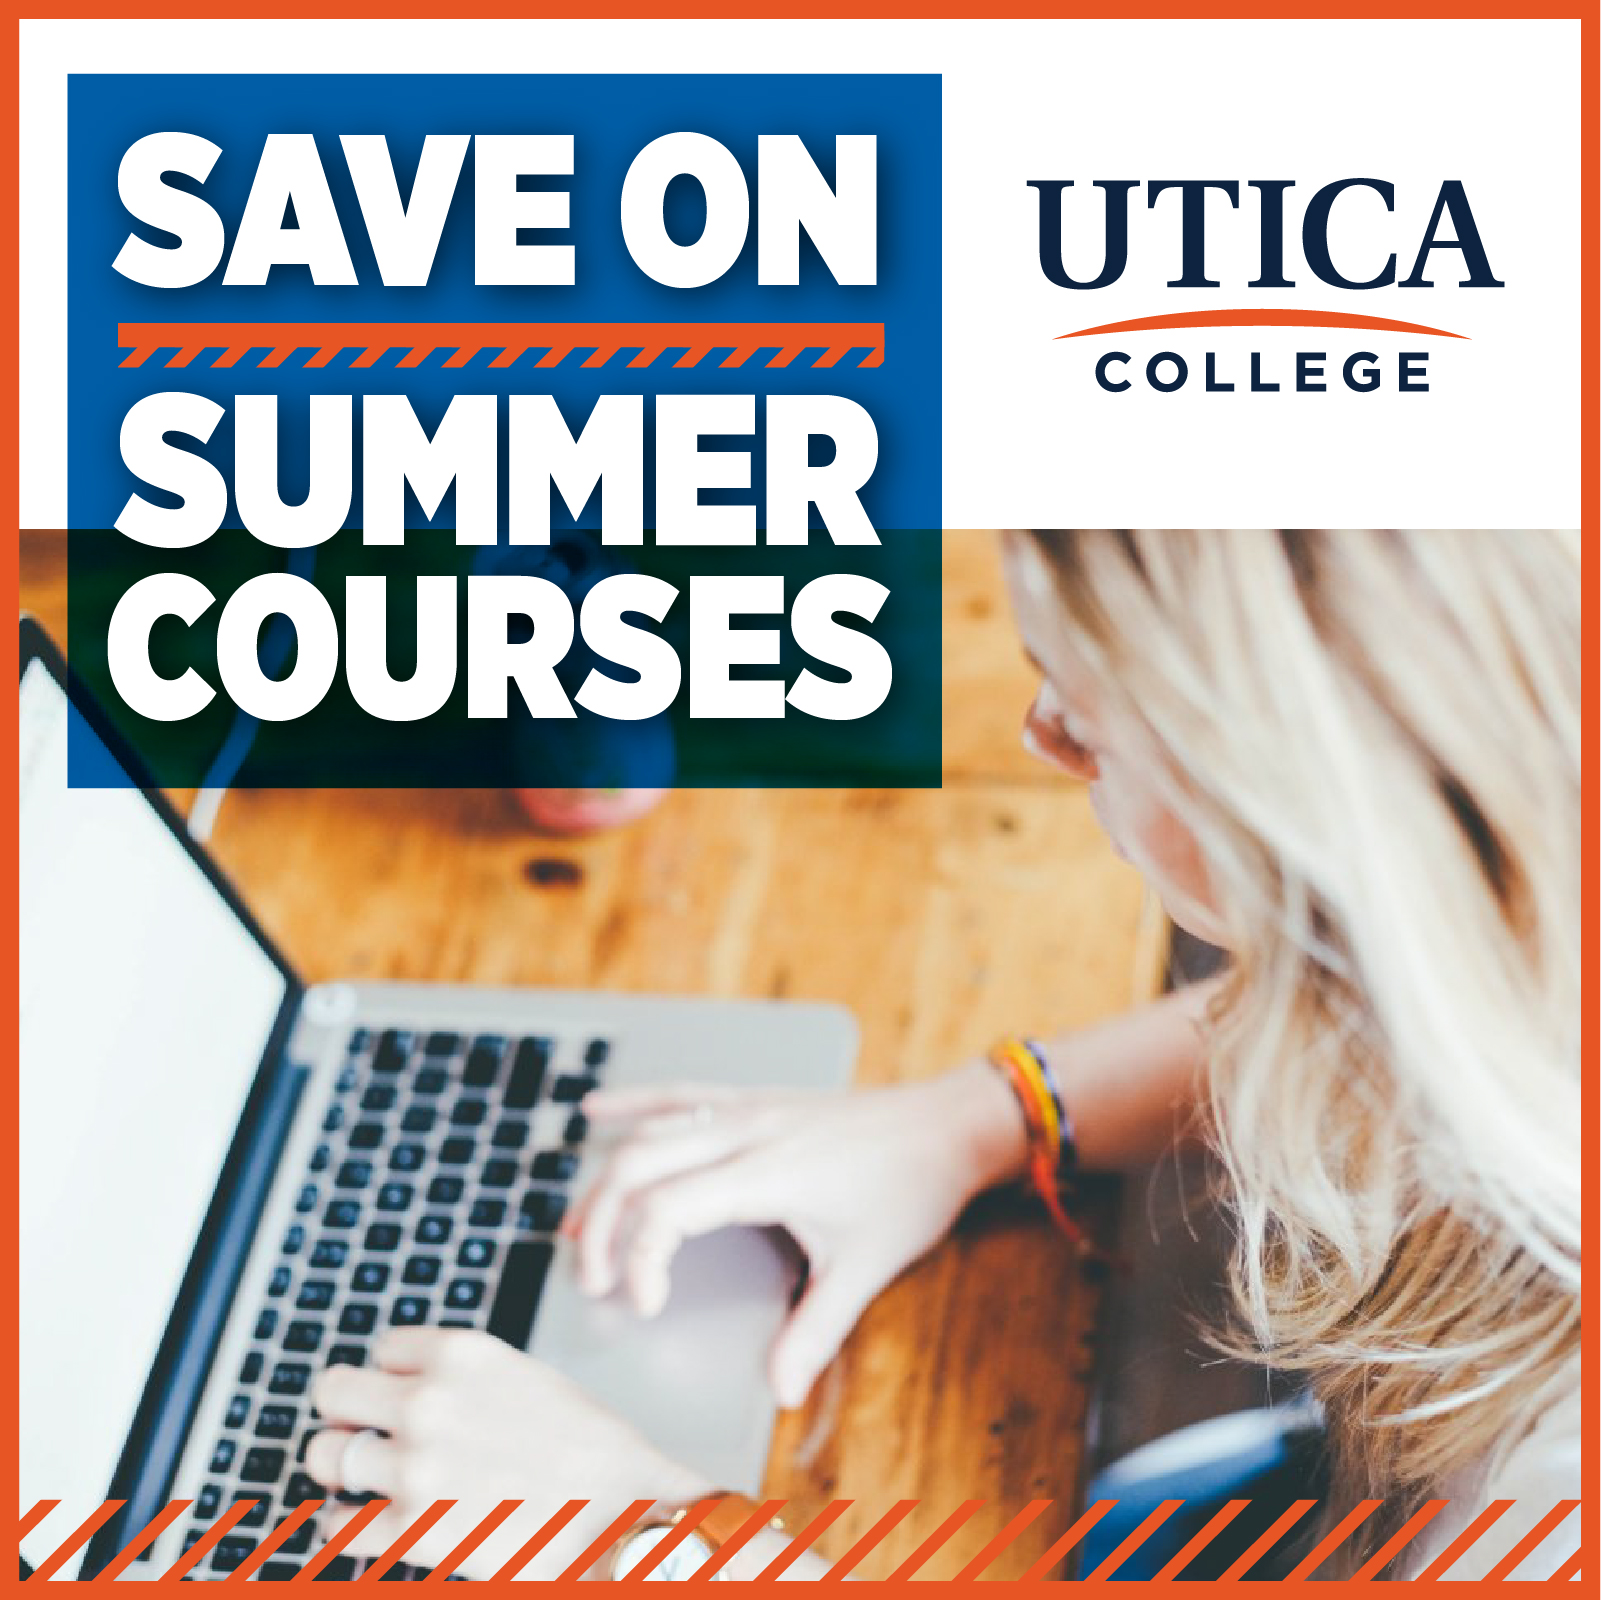 Save on Summer Courses